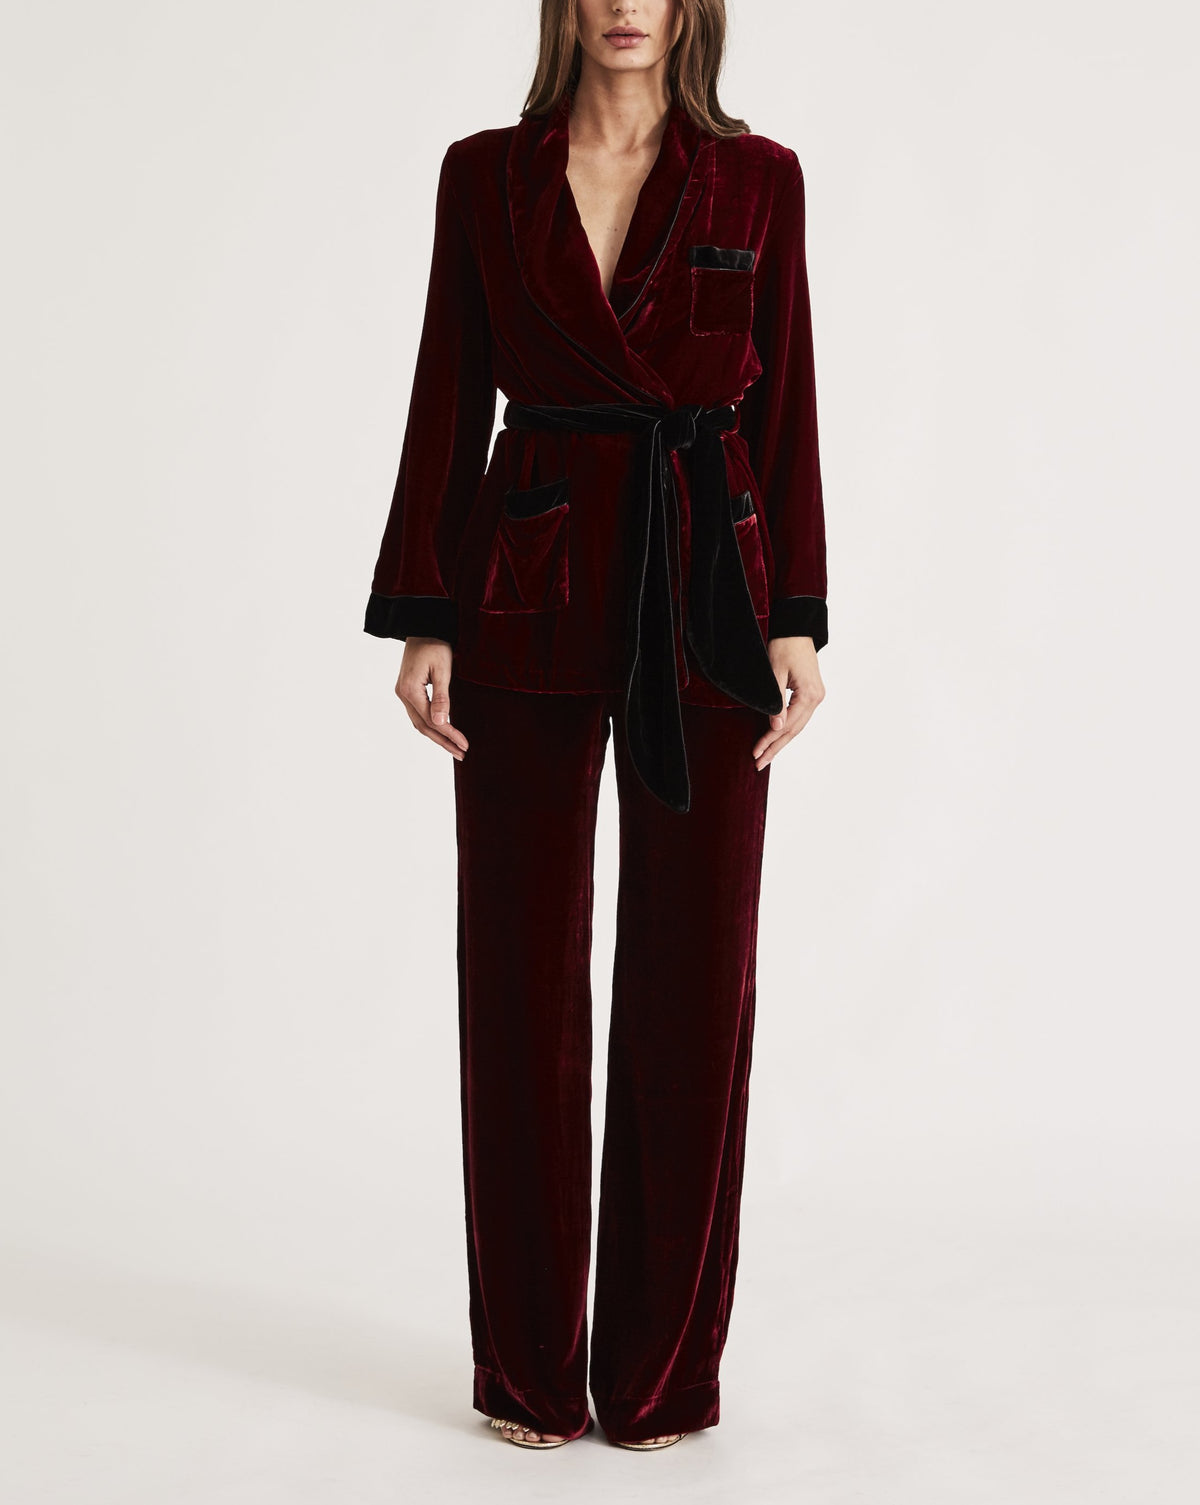 THE BON VIVANT ROBE in RED WINE